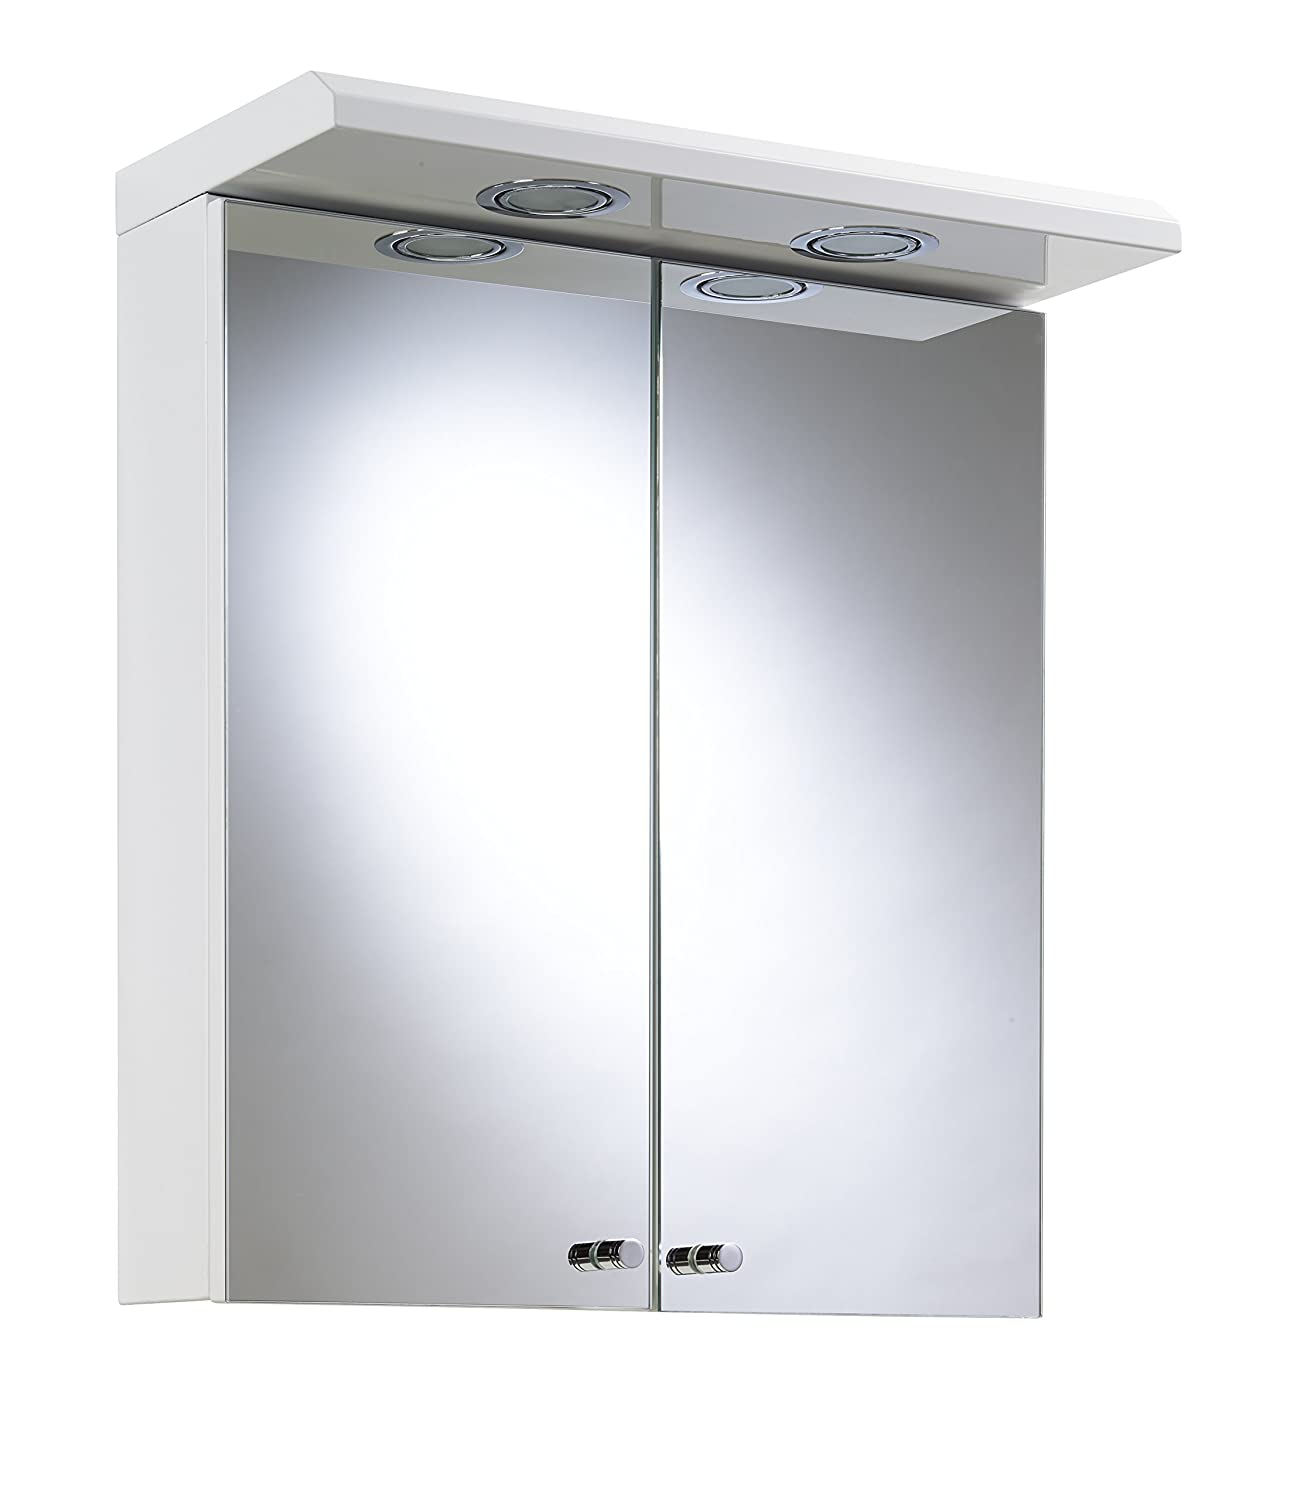 Croydex Shire Double Door Illuminated Cabinet, White, 530 x 450 x 230 mm WC266222E